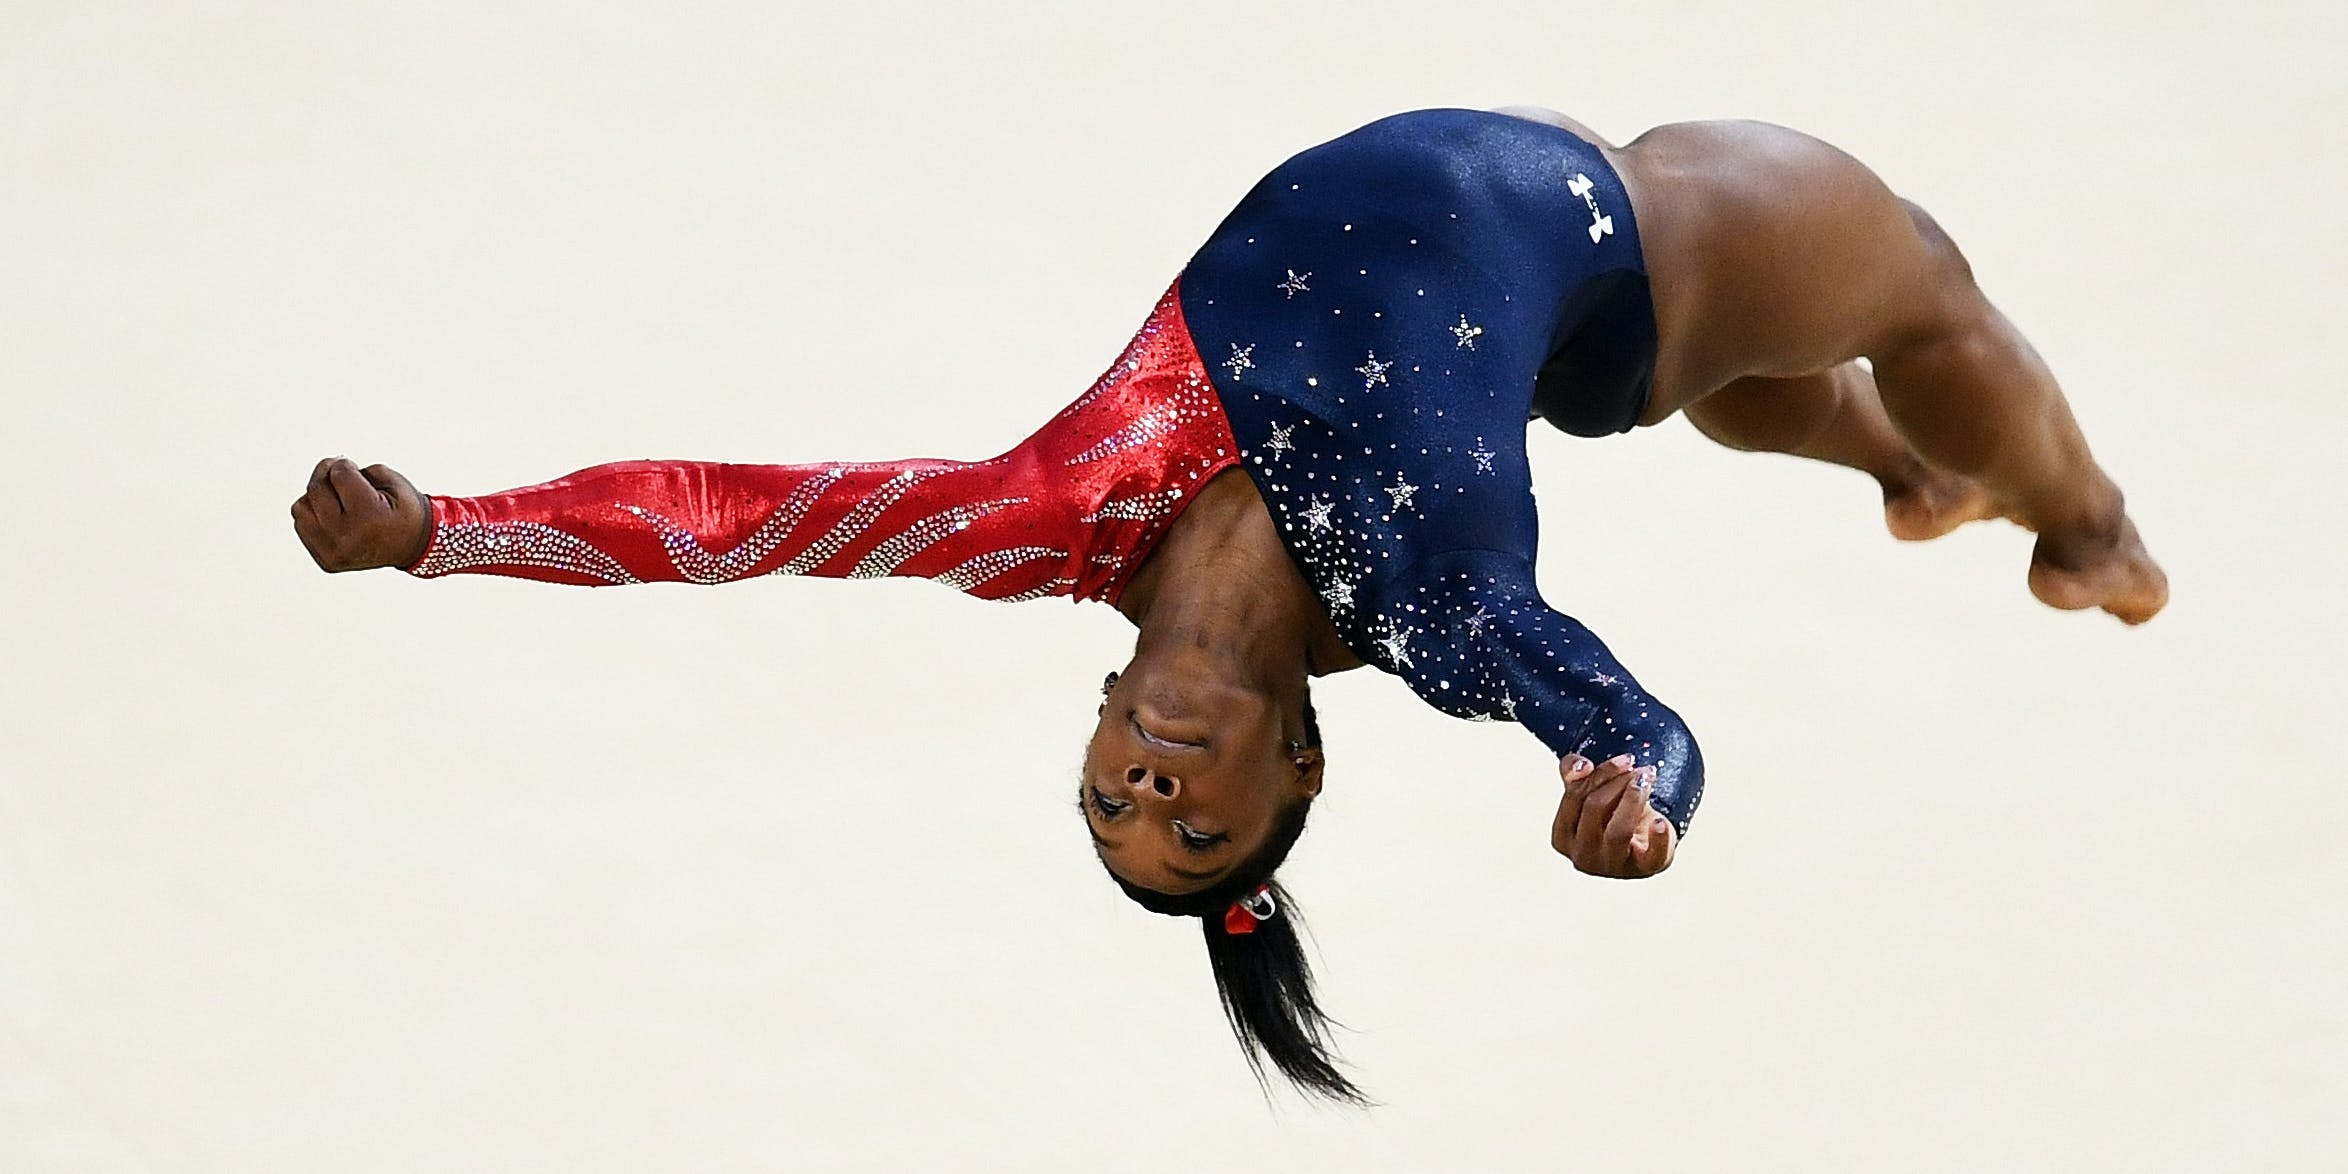 RIO DE JANEIRO, BRAZIL - AUGUST 07:  Simone Biles of the United States competes on the floor during Women's qualification for Artistic Gymnastics on Day 2 of the Rio 2016 Olympic Games at the Rio Olympic Arena on August 7, 2016 in Rio de Janeiro, Brazil  (Photo by David Ramos/Getty Images)